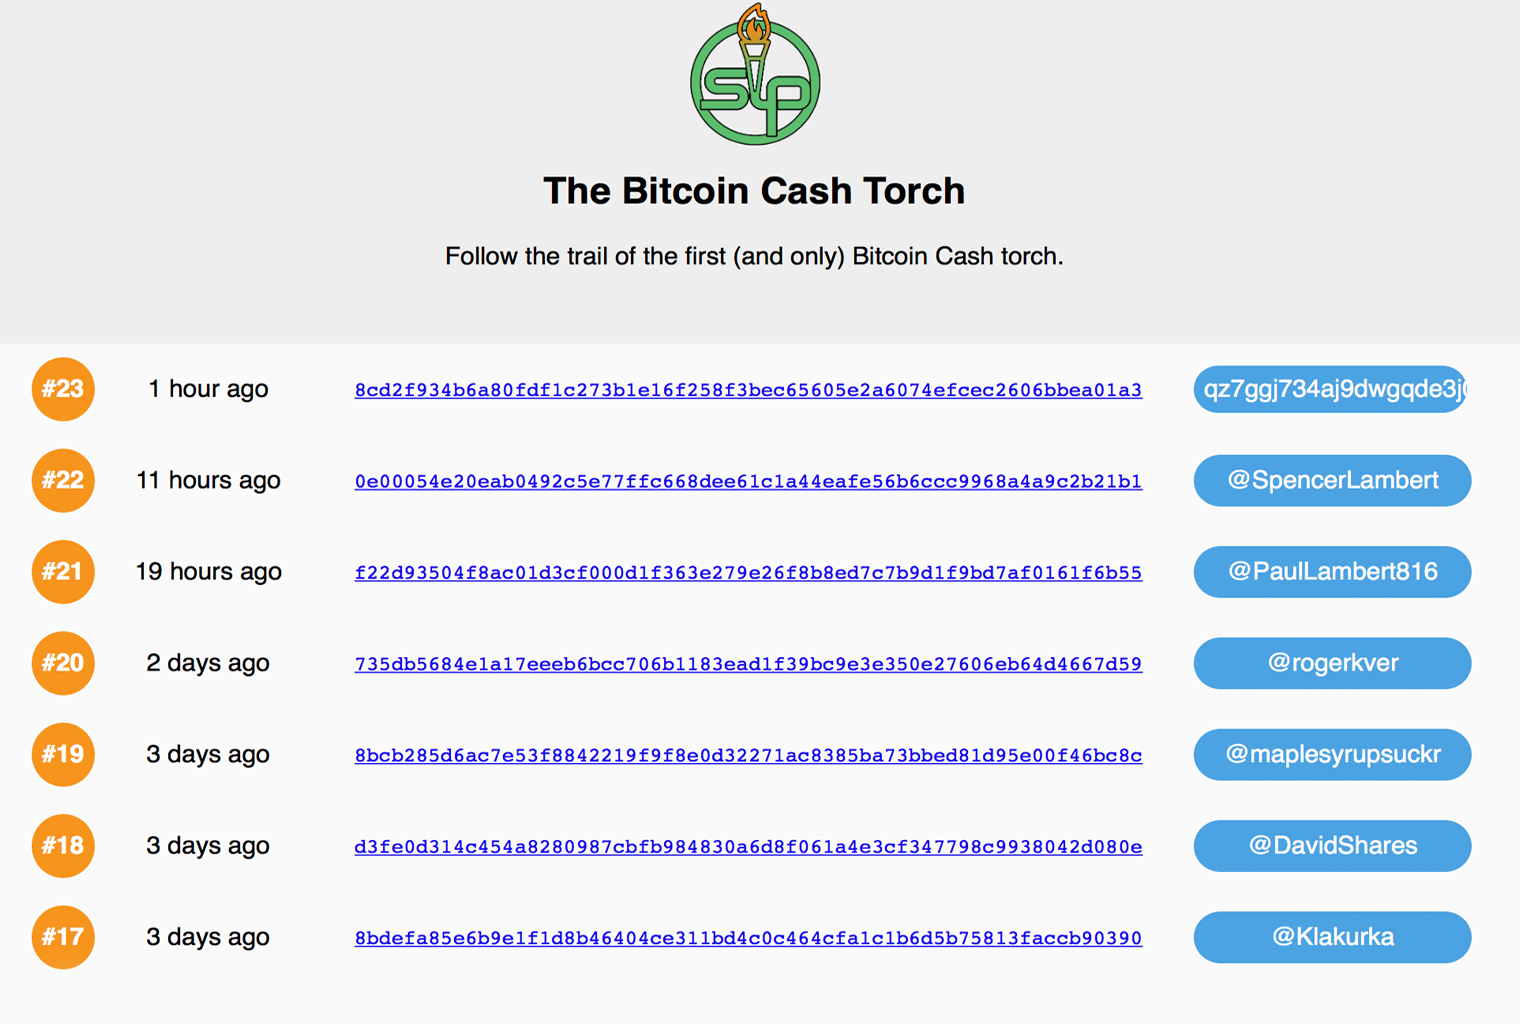 Bitcoin Cash Fans Start 'Torch Passing' Ceremony With a Non-Divisible Token